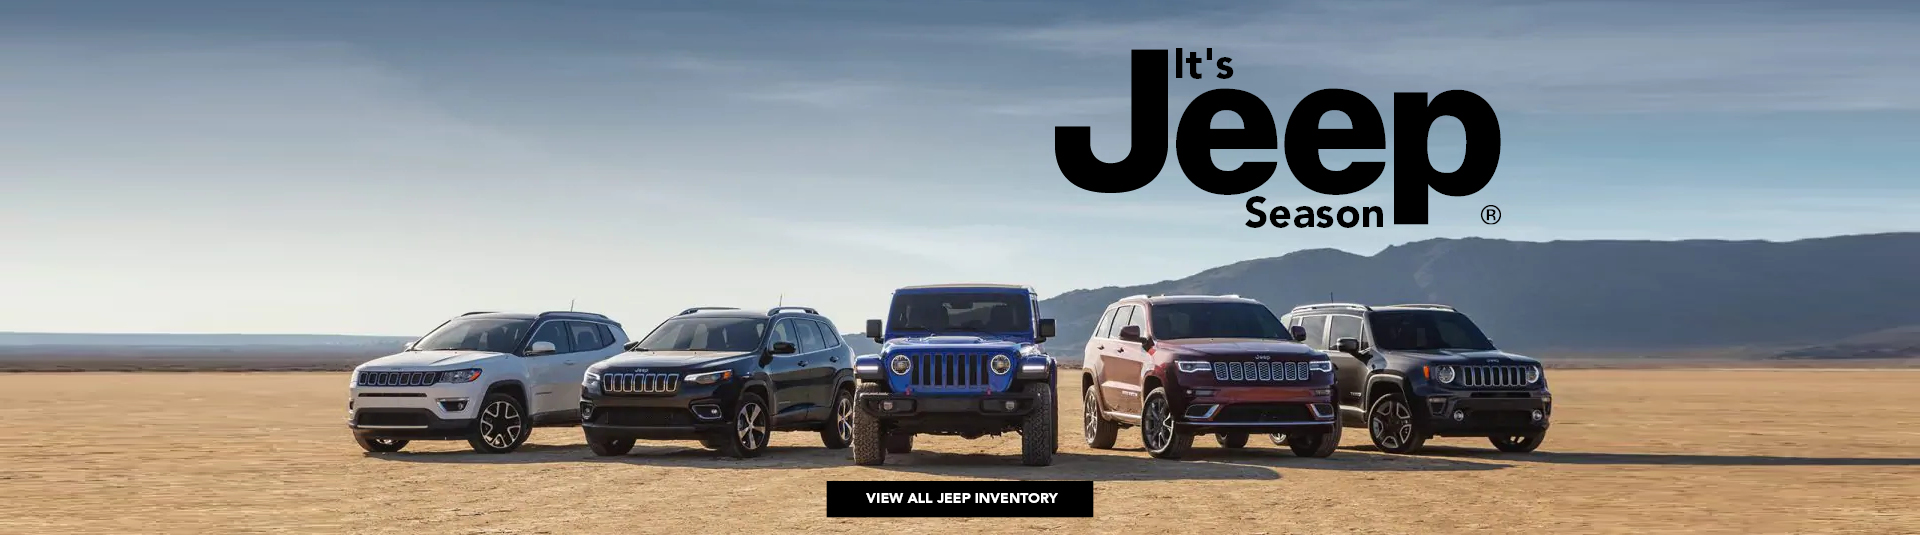 Downtown-Chrysler-Jeep-Season-Hero-May-2019-V2.jpg